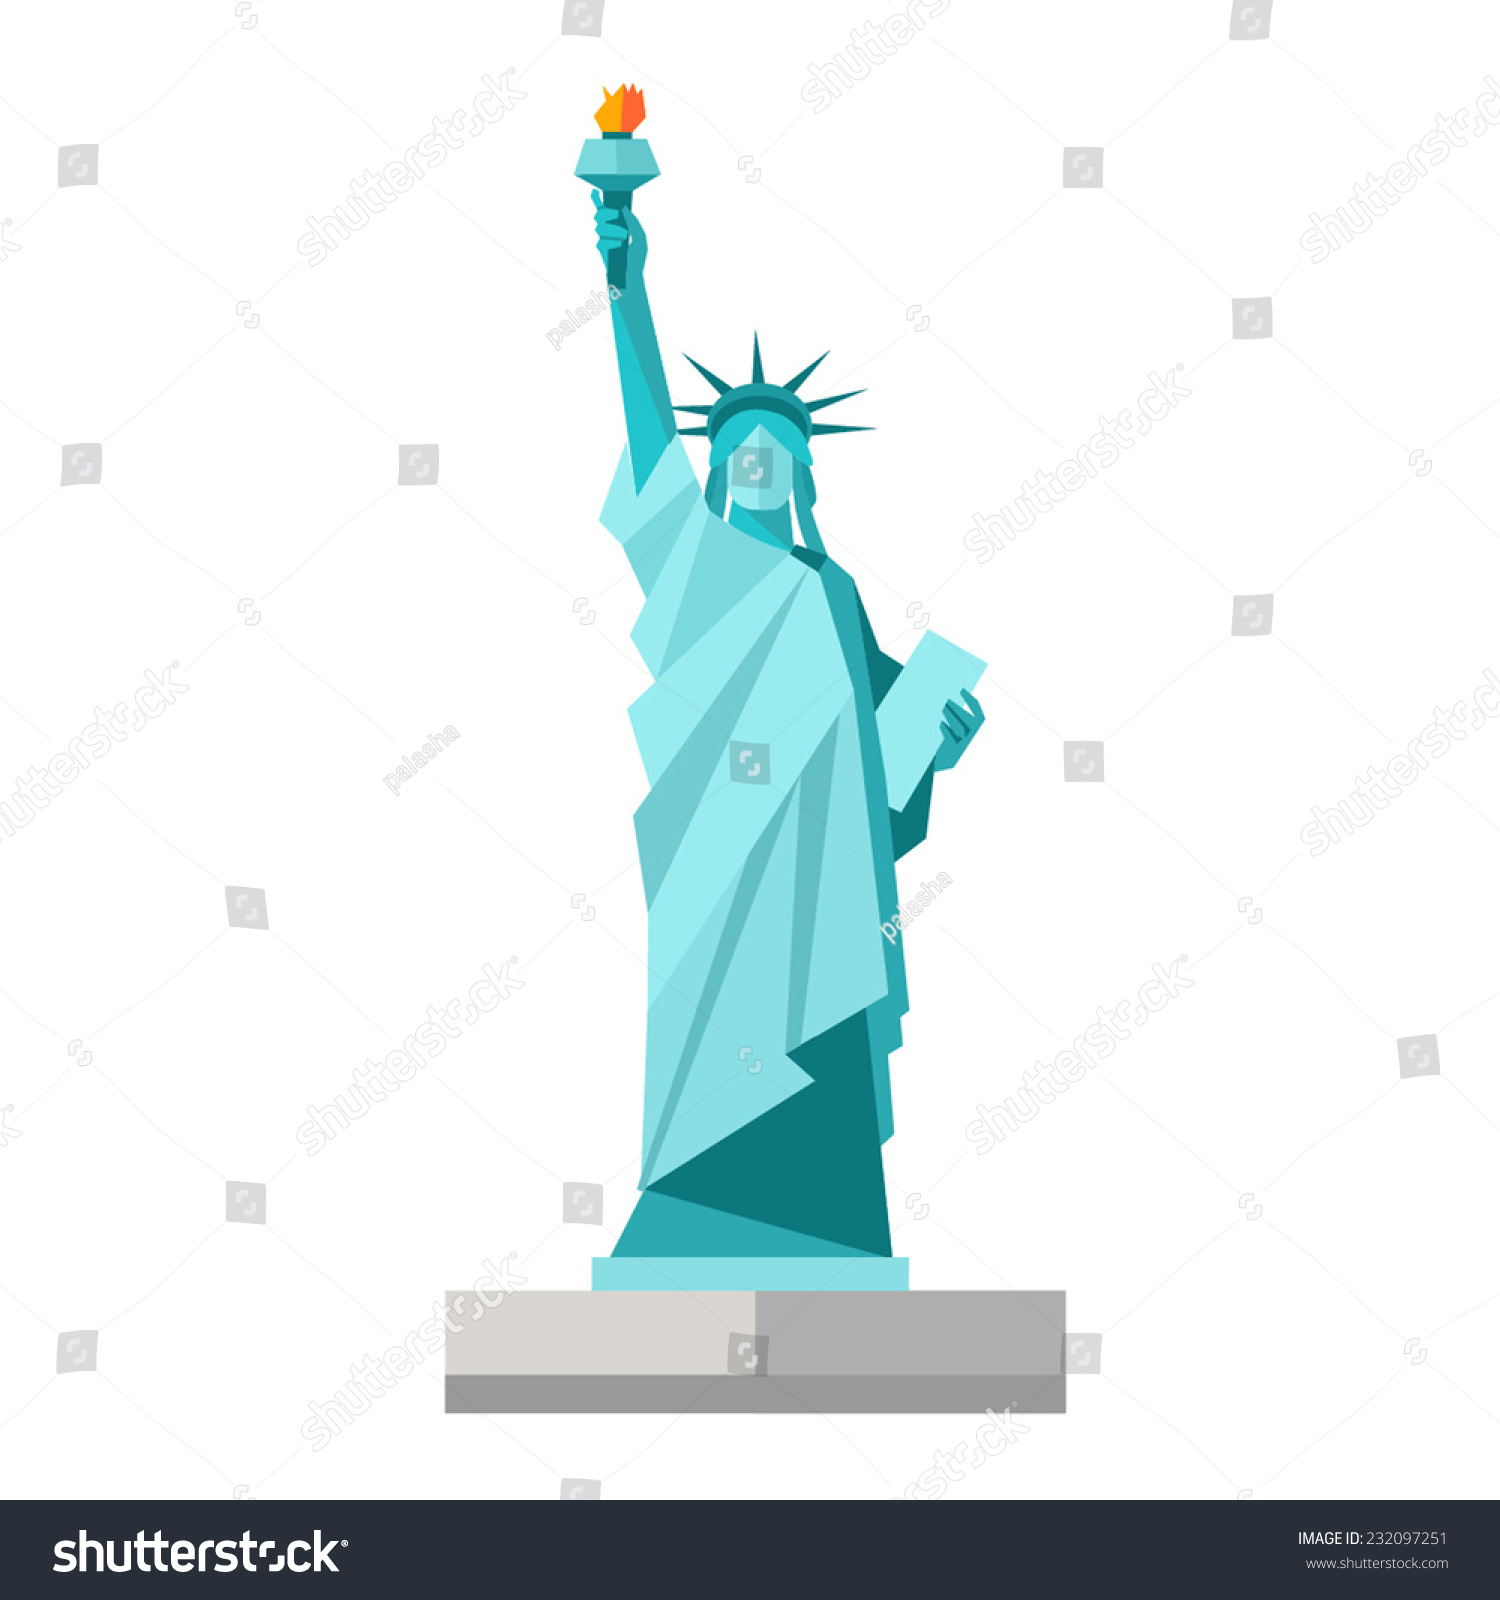 Isolated statue of liberty on white background. Flat style. Vector illustration